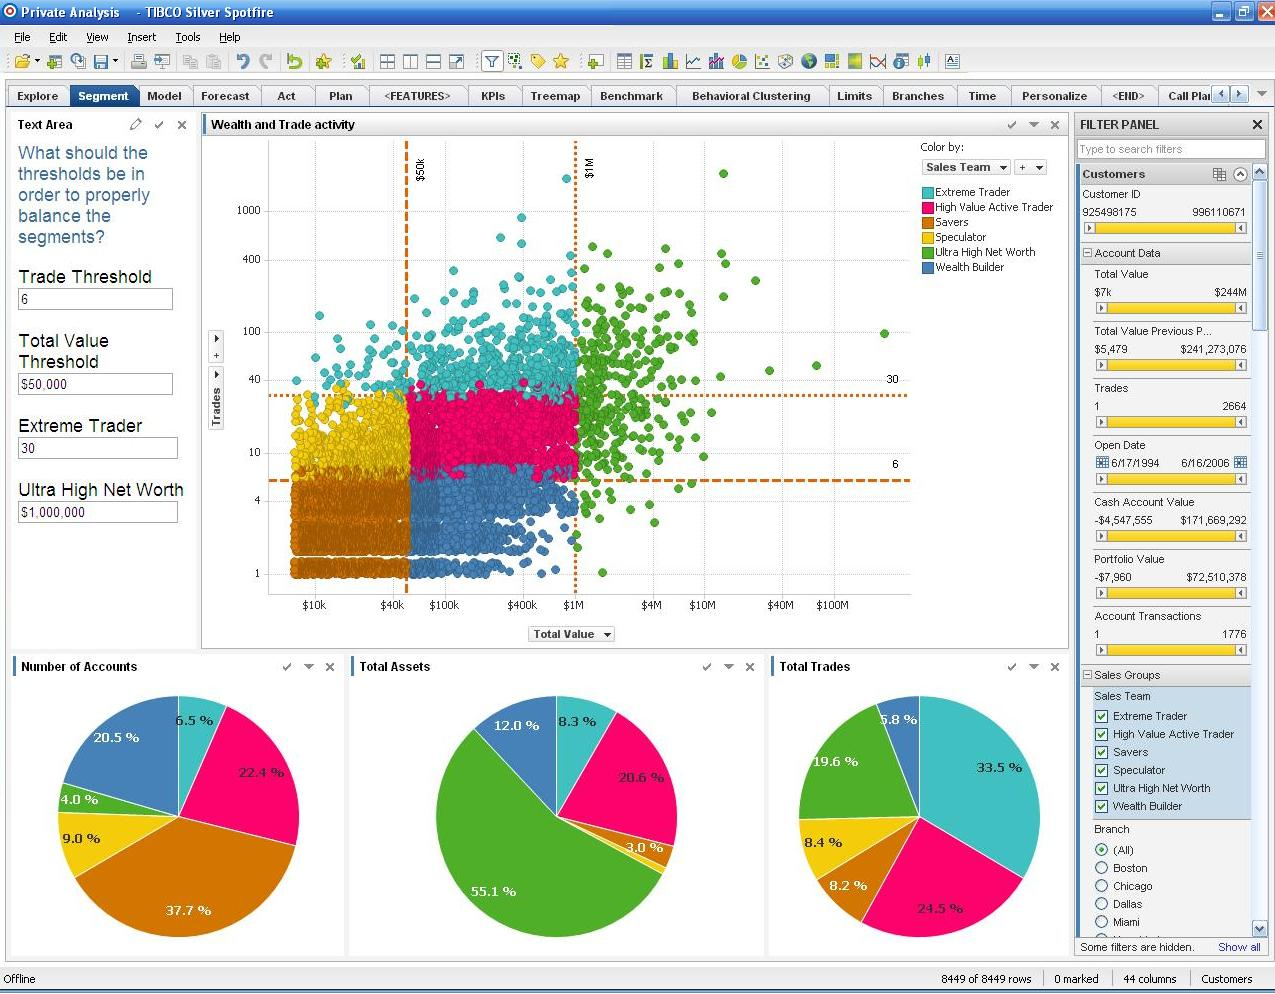 tibco unveils cloud based offering to make analytics easy for any